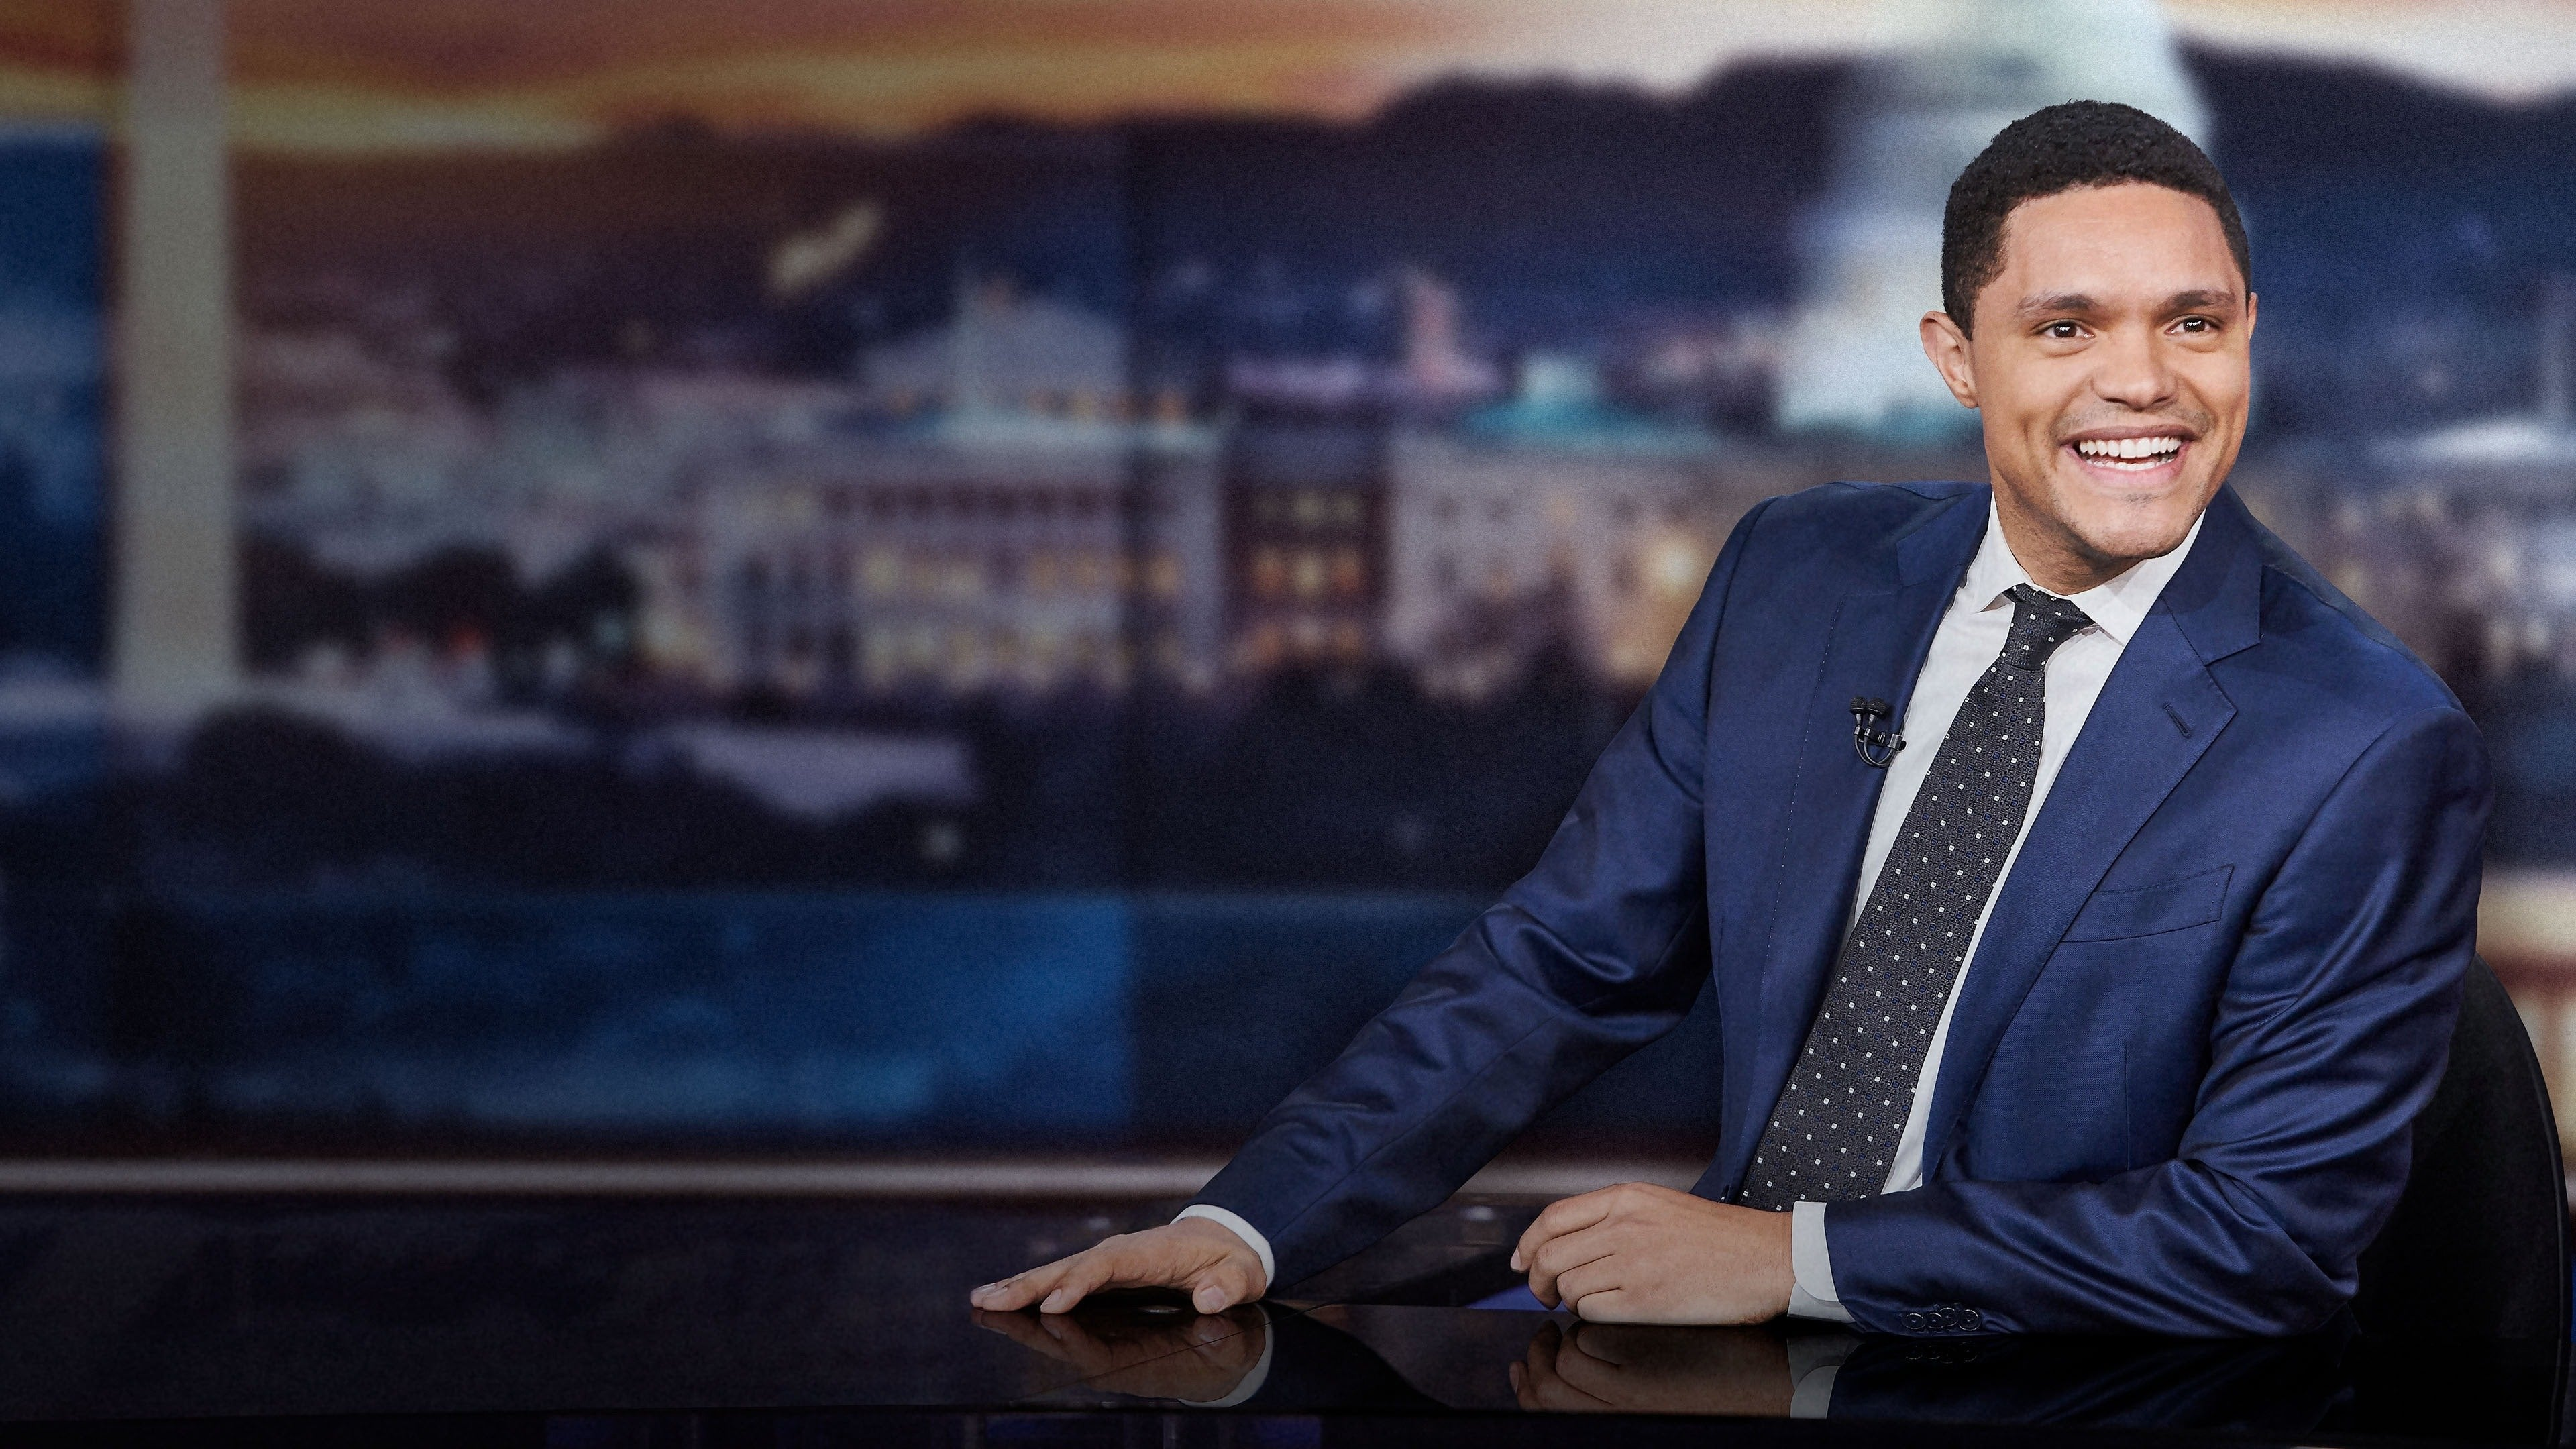 The Daily Show with Trevor Noah - Season 19 Episode 112 : Ricky Gervais